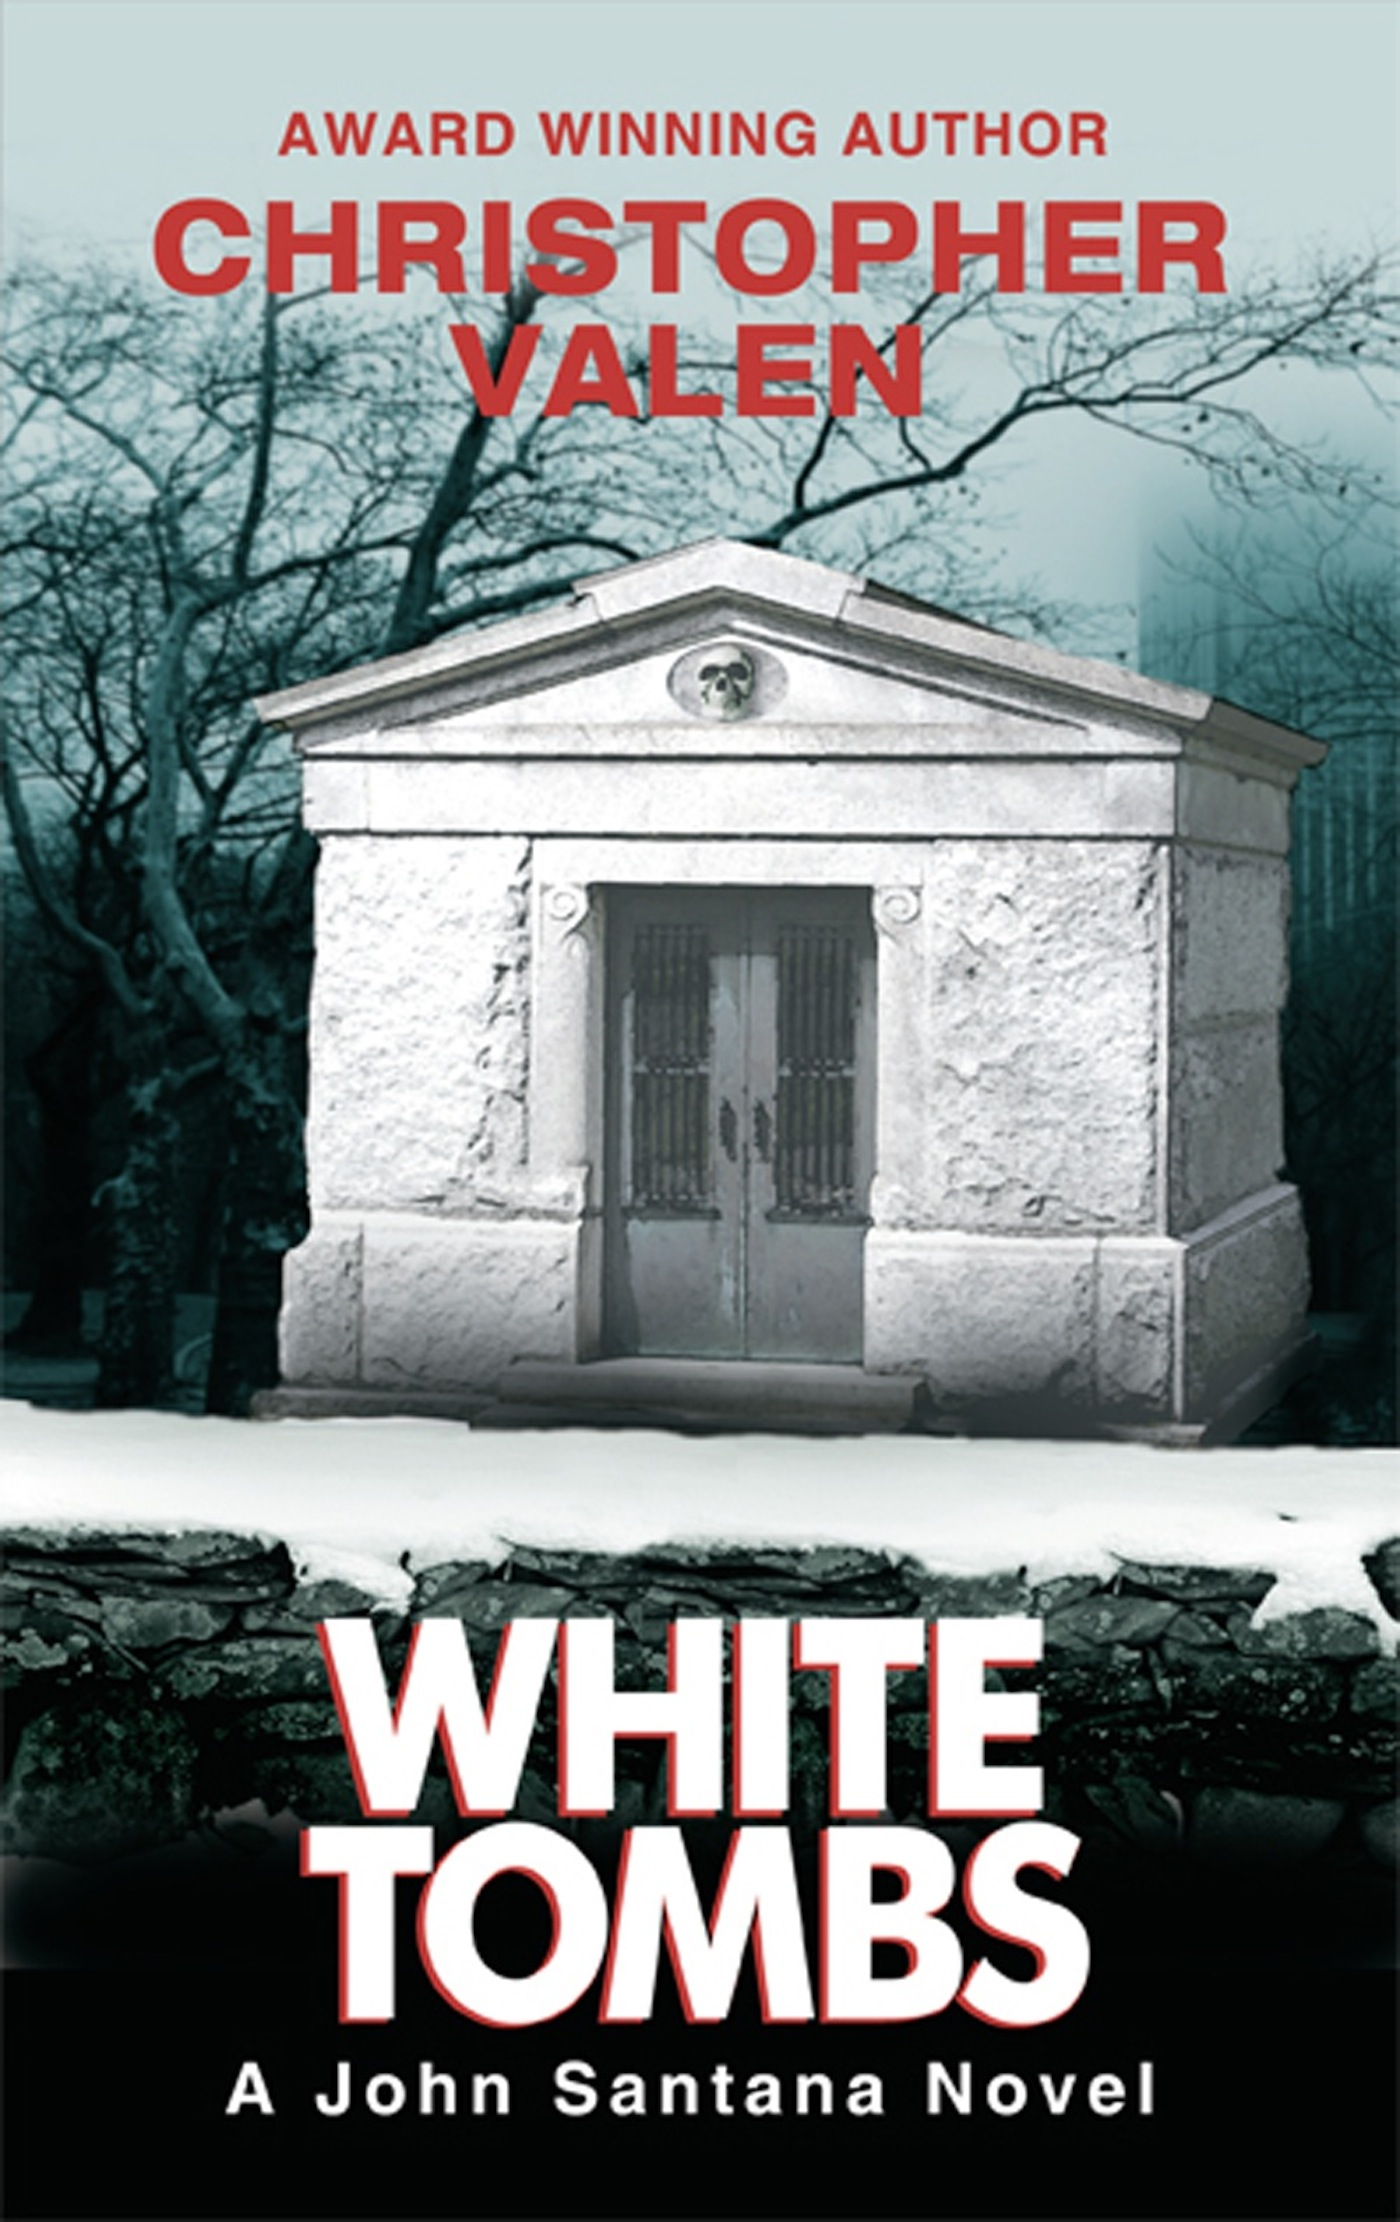 White Tombs